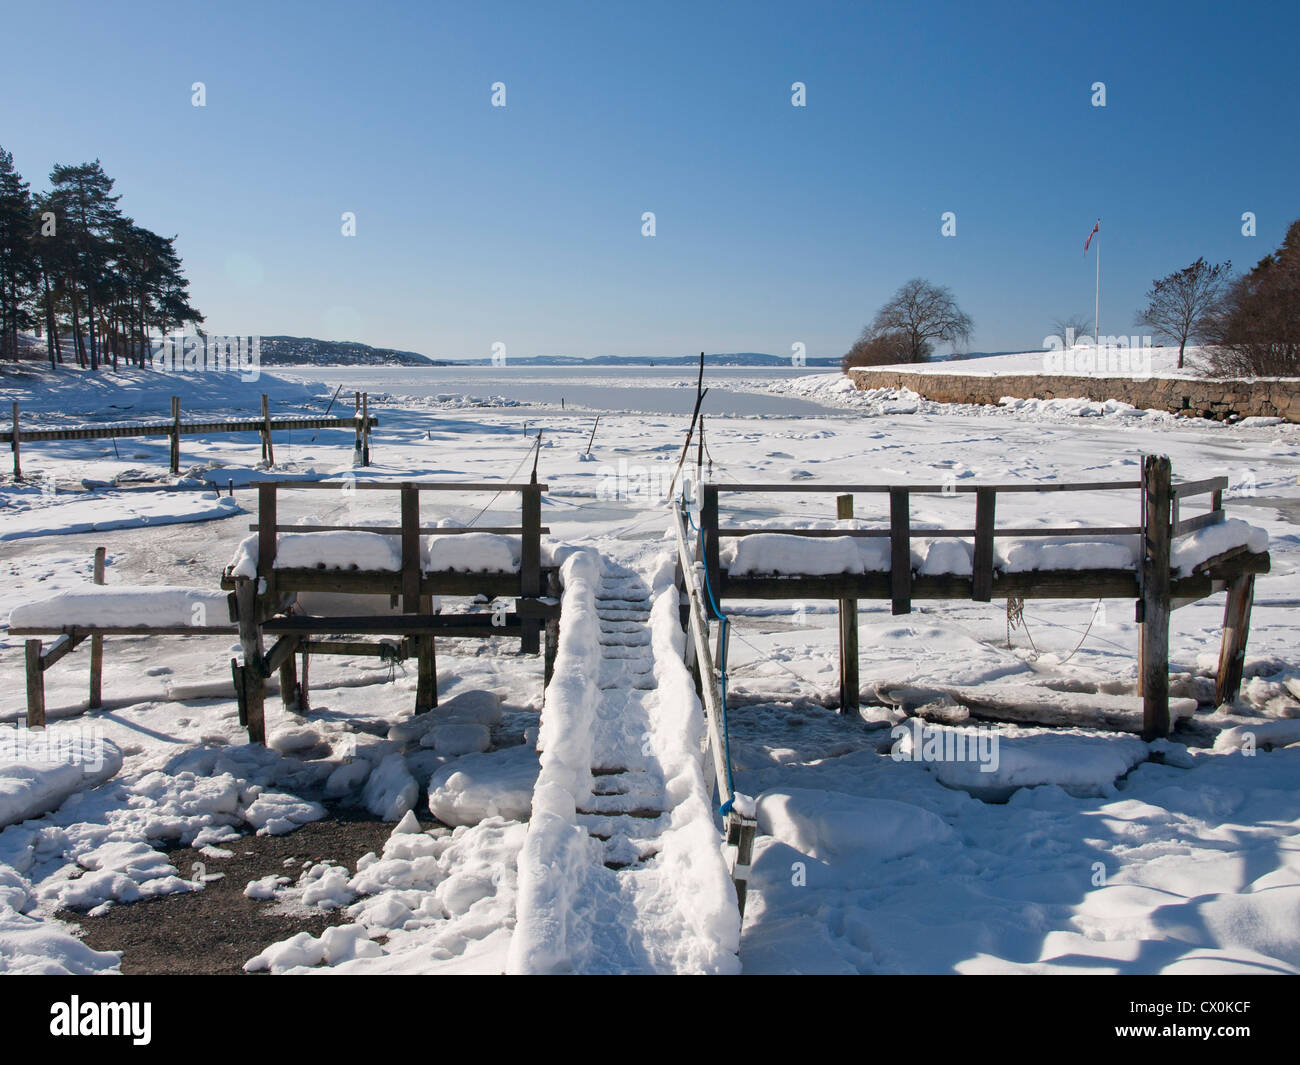 Snow covered pier at Bygdøy in Oslo Norway with view of the ice covered Oslofjord Stock Photo